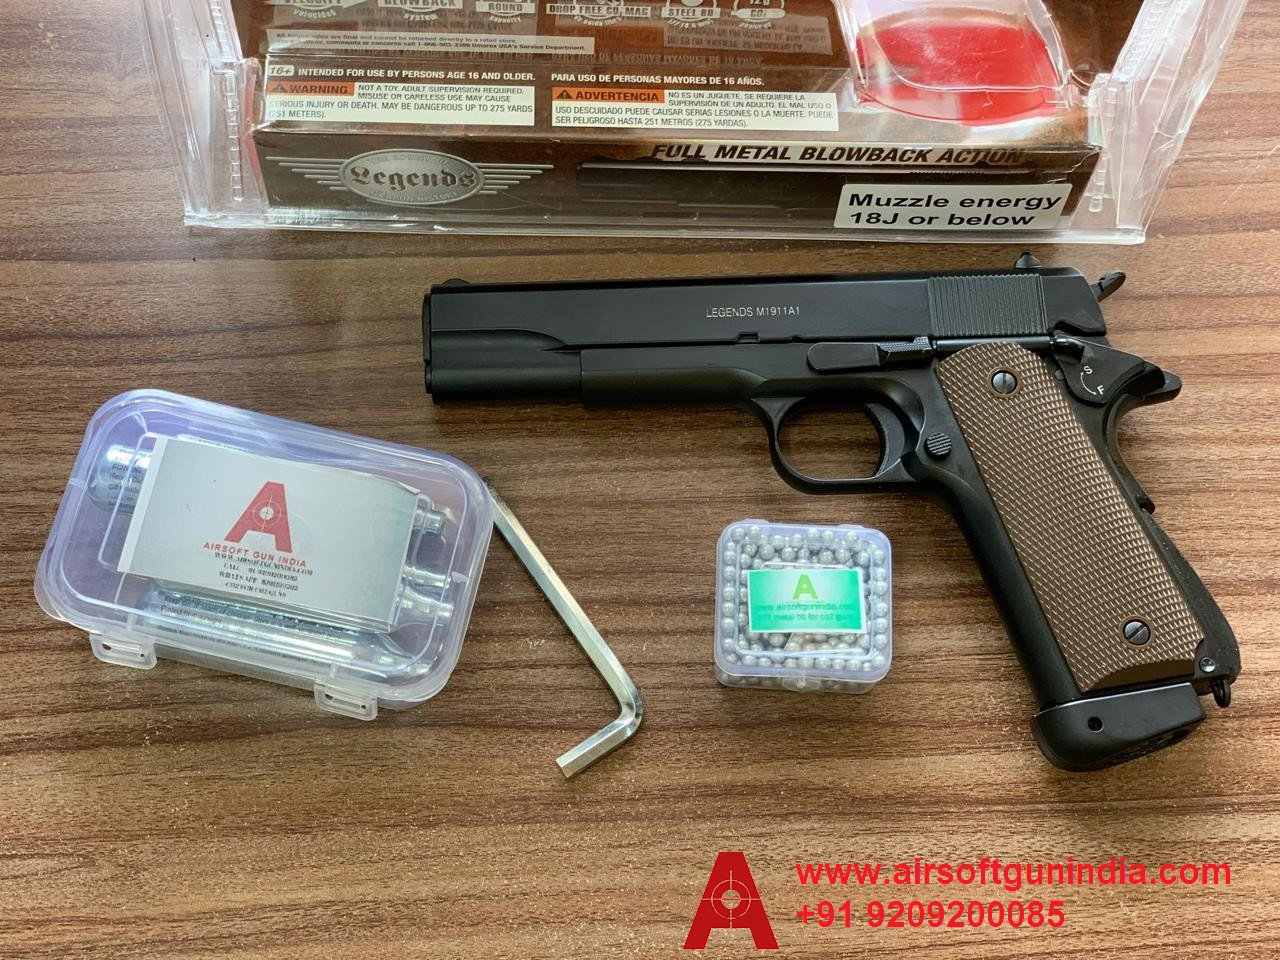 LEGENDS M1911 METAL BLOWBACK CO2 BB AIR PISTOL By Airsoft Gun India